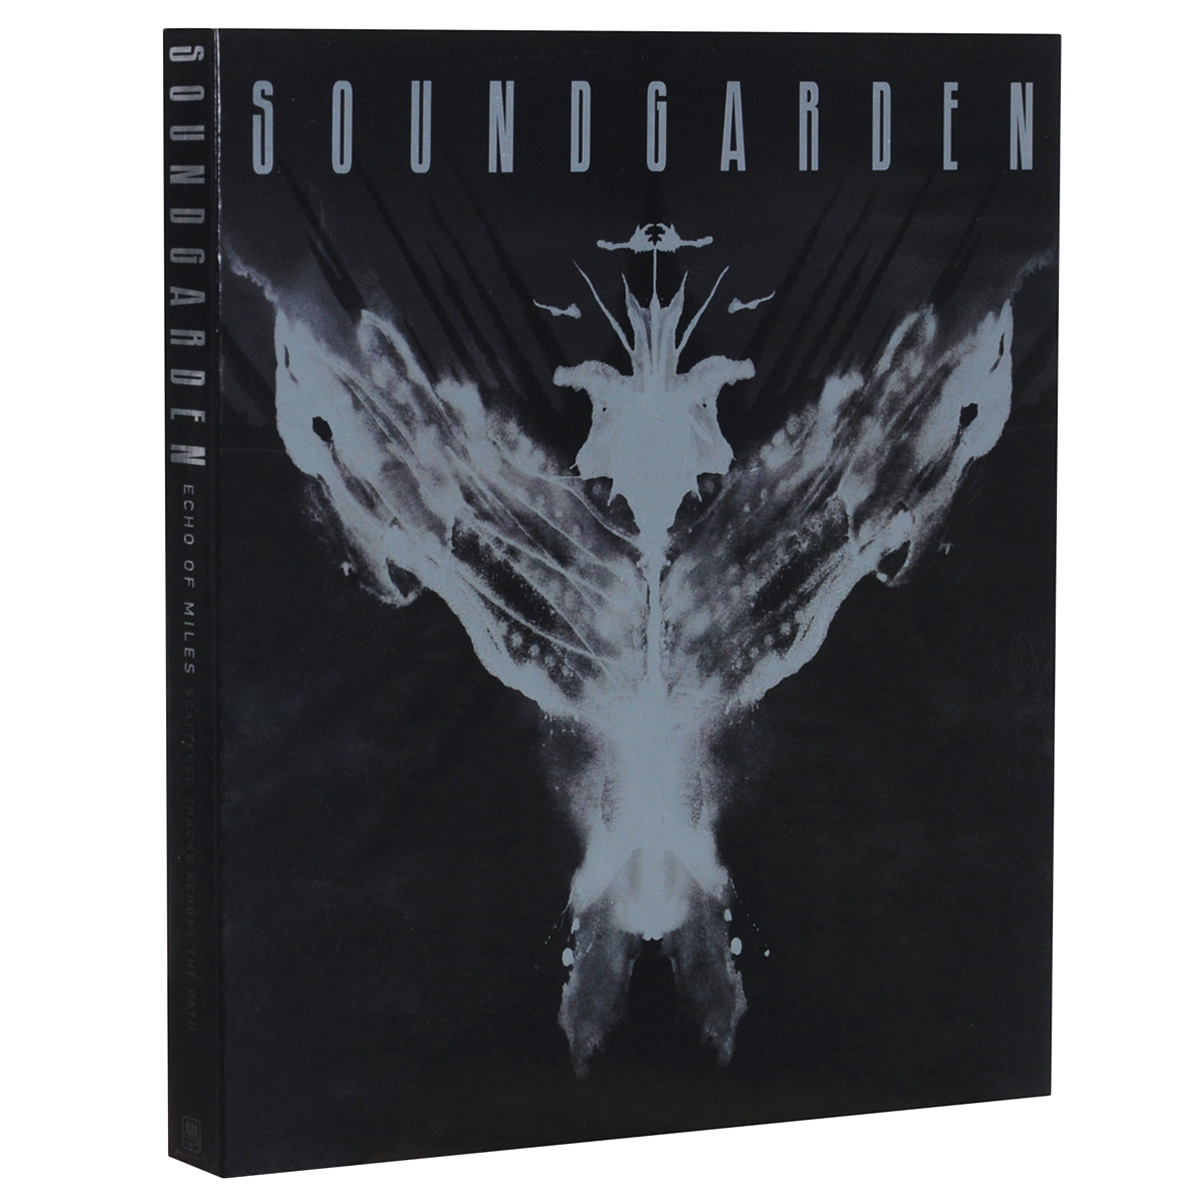 Soundgarden Soundgarden. Echo Of Miles. Scattered Tracks Across The Path. Limited Edition (6 LP) soundgarden soundgarden badmotorfinger 2 lp